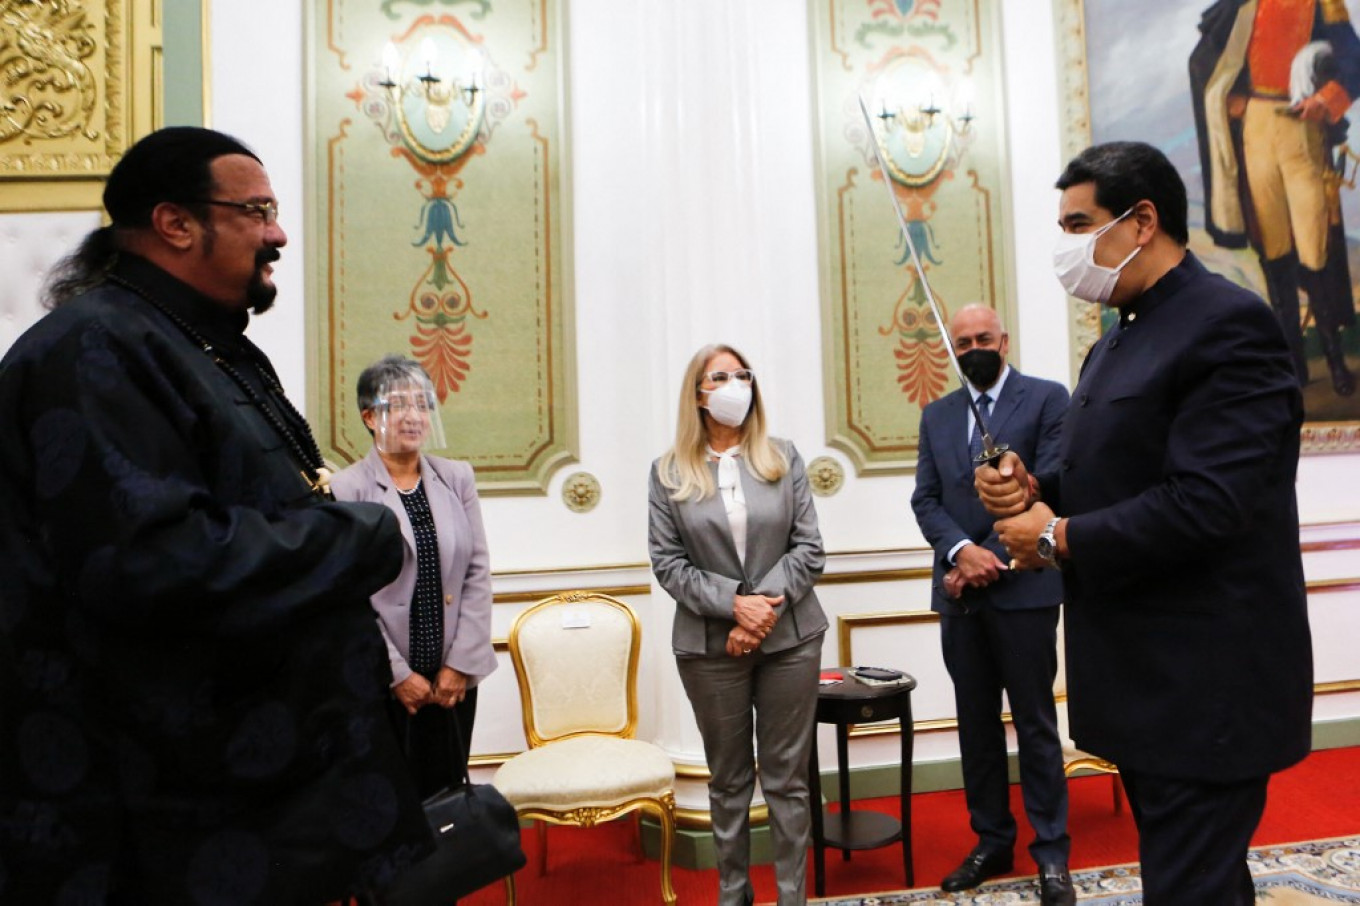 Russian Special Envoy Steven Seagal Gifts Sword to Venezuela's Maduro – The Moscow Times